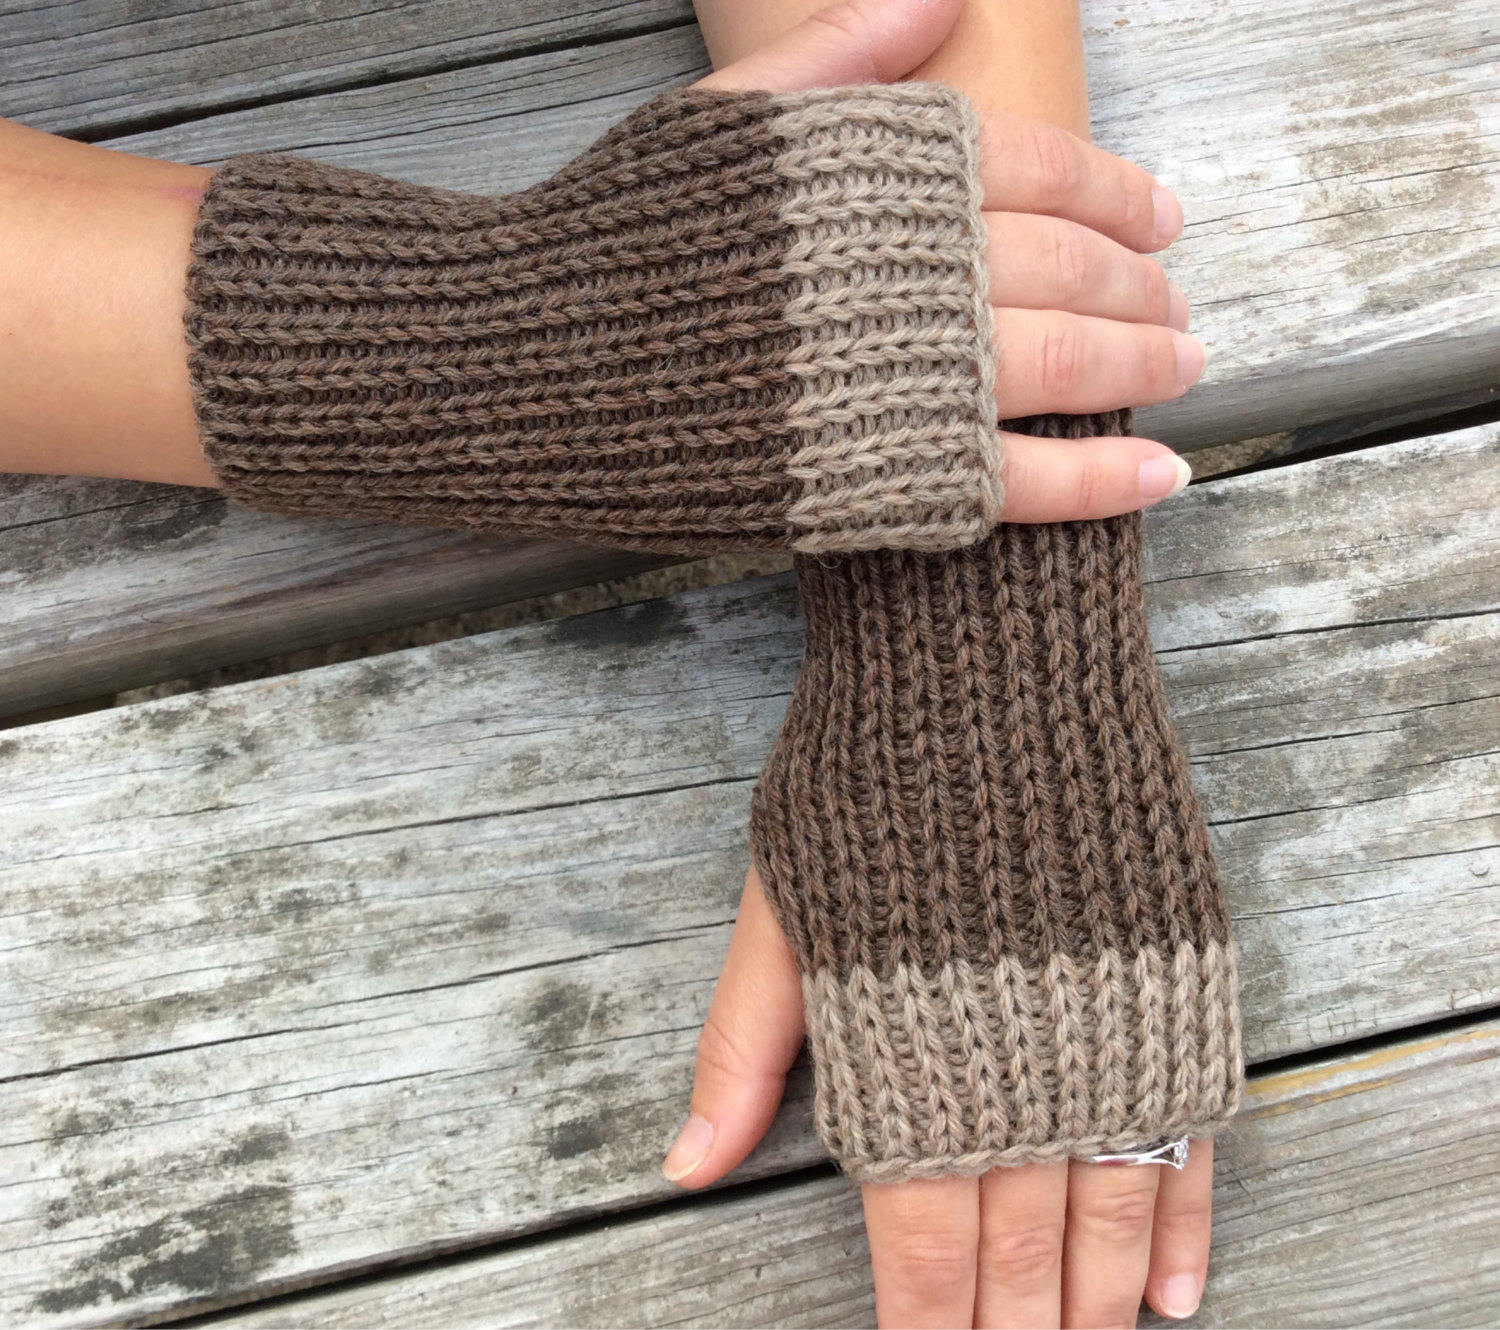 Mens Fingerless Gloves Knitting Pattern Brown Fingerless Gloves Mens Fingerless Gloves Knit Gloves Wrist Warmers Hand Warmers Texting Gloves Brown